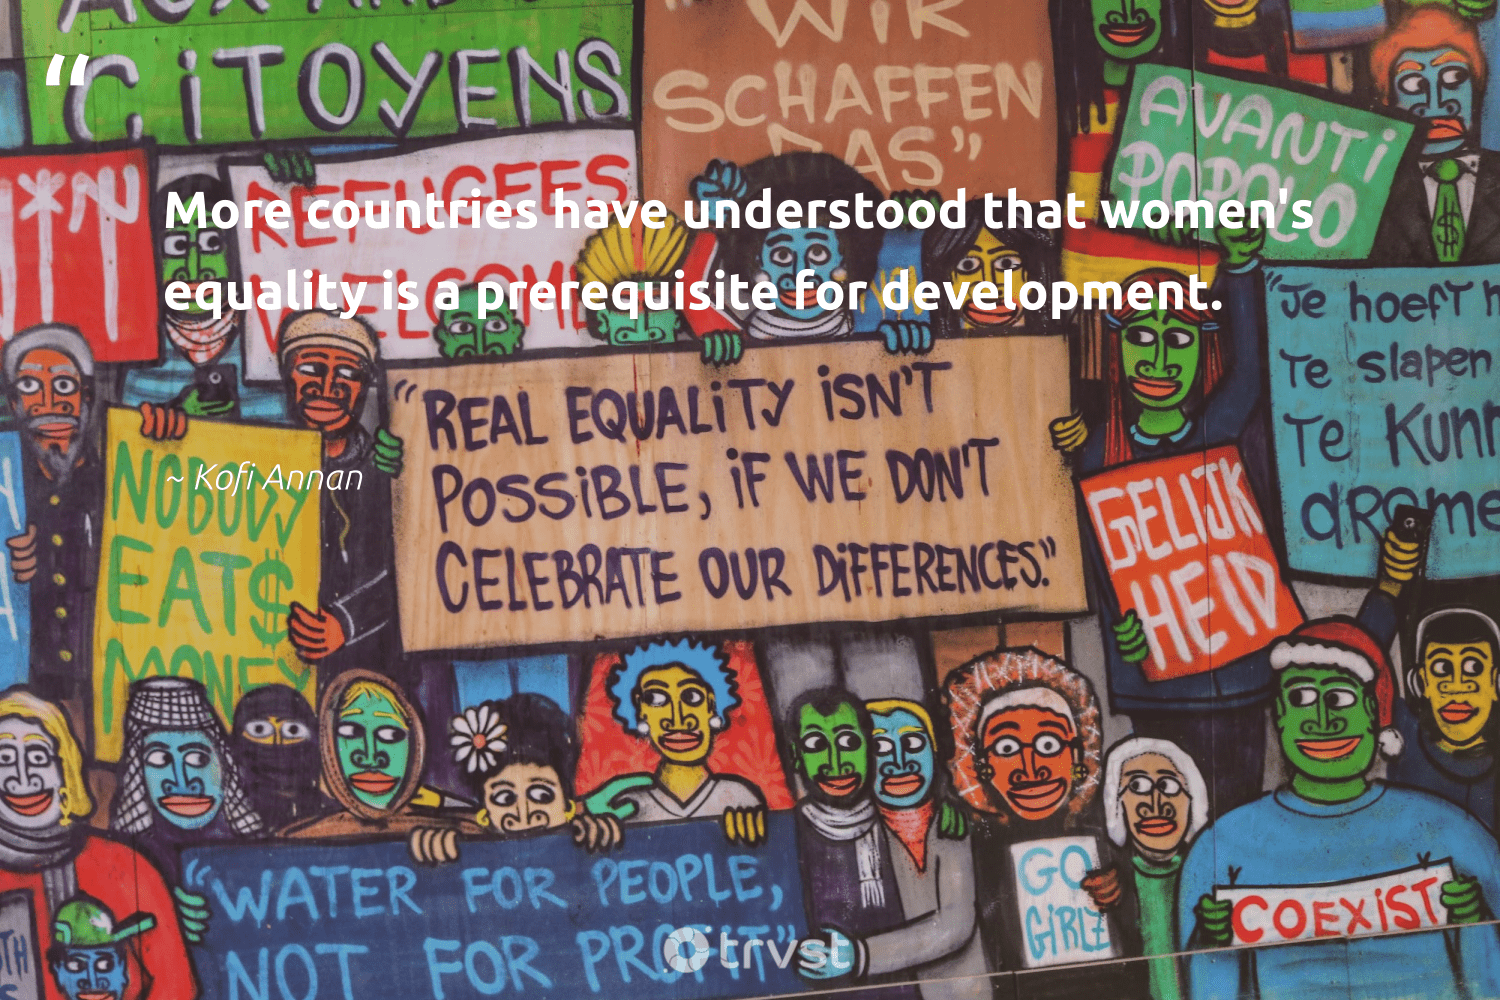 """More countries have understood that women's equality is a prerequisite for development.""  - Kofi Annan #trvst #quotes #equality #development #empowerment #giveback #weareallone #dogood #equalopportunity #socialchange #makeadifference #bethechange"